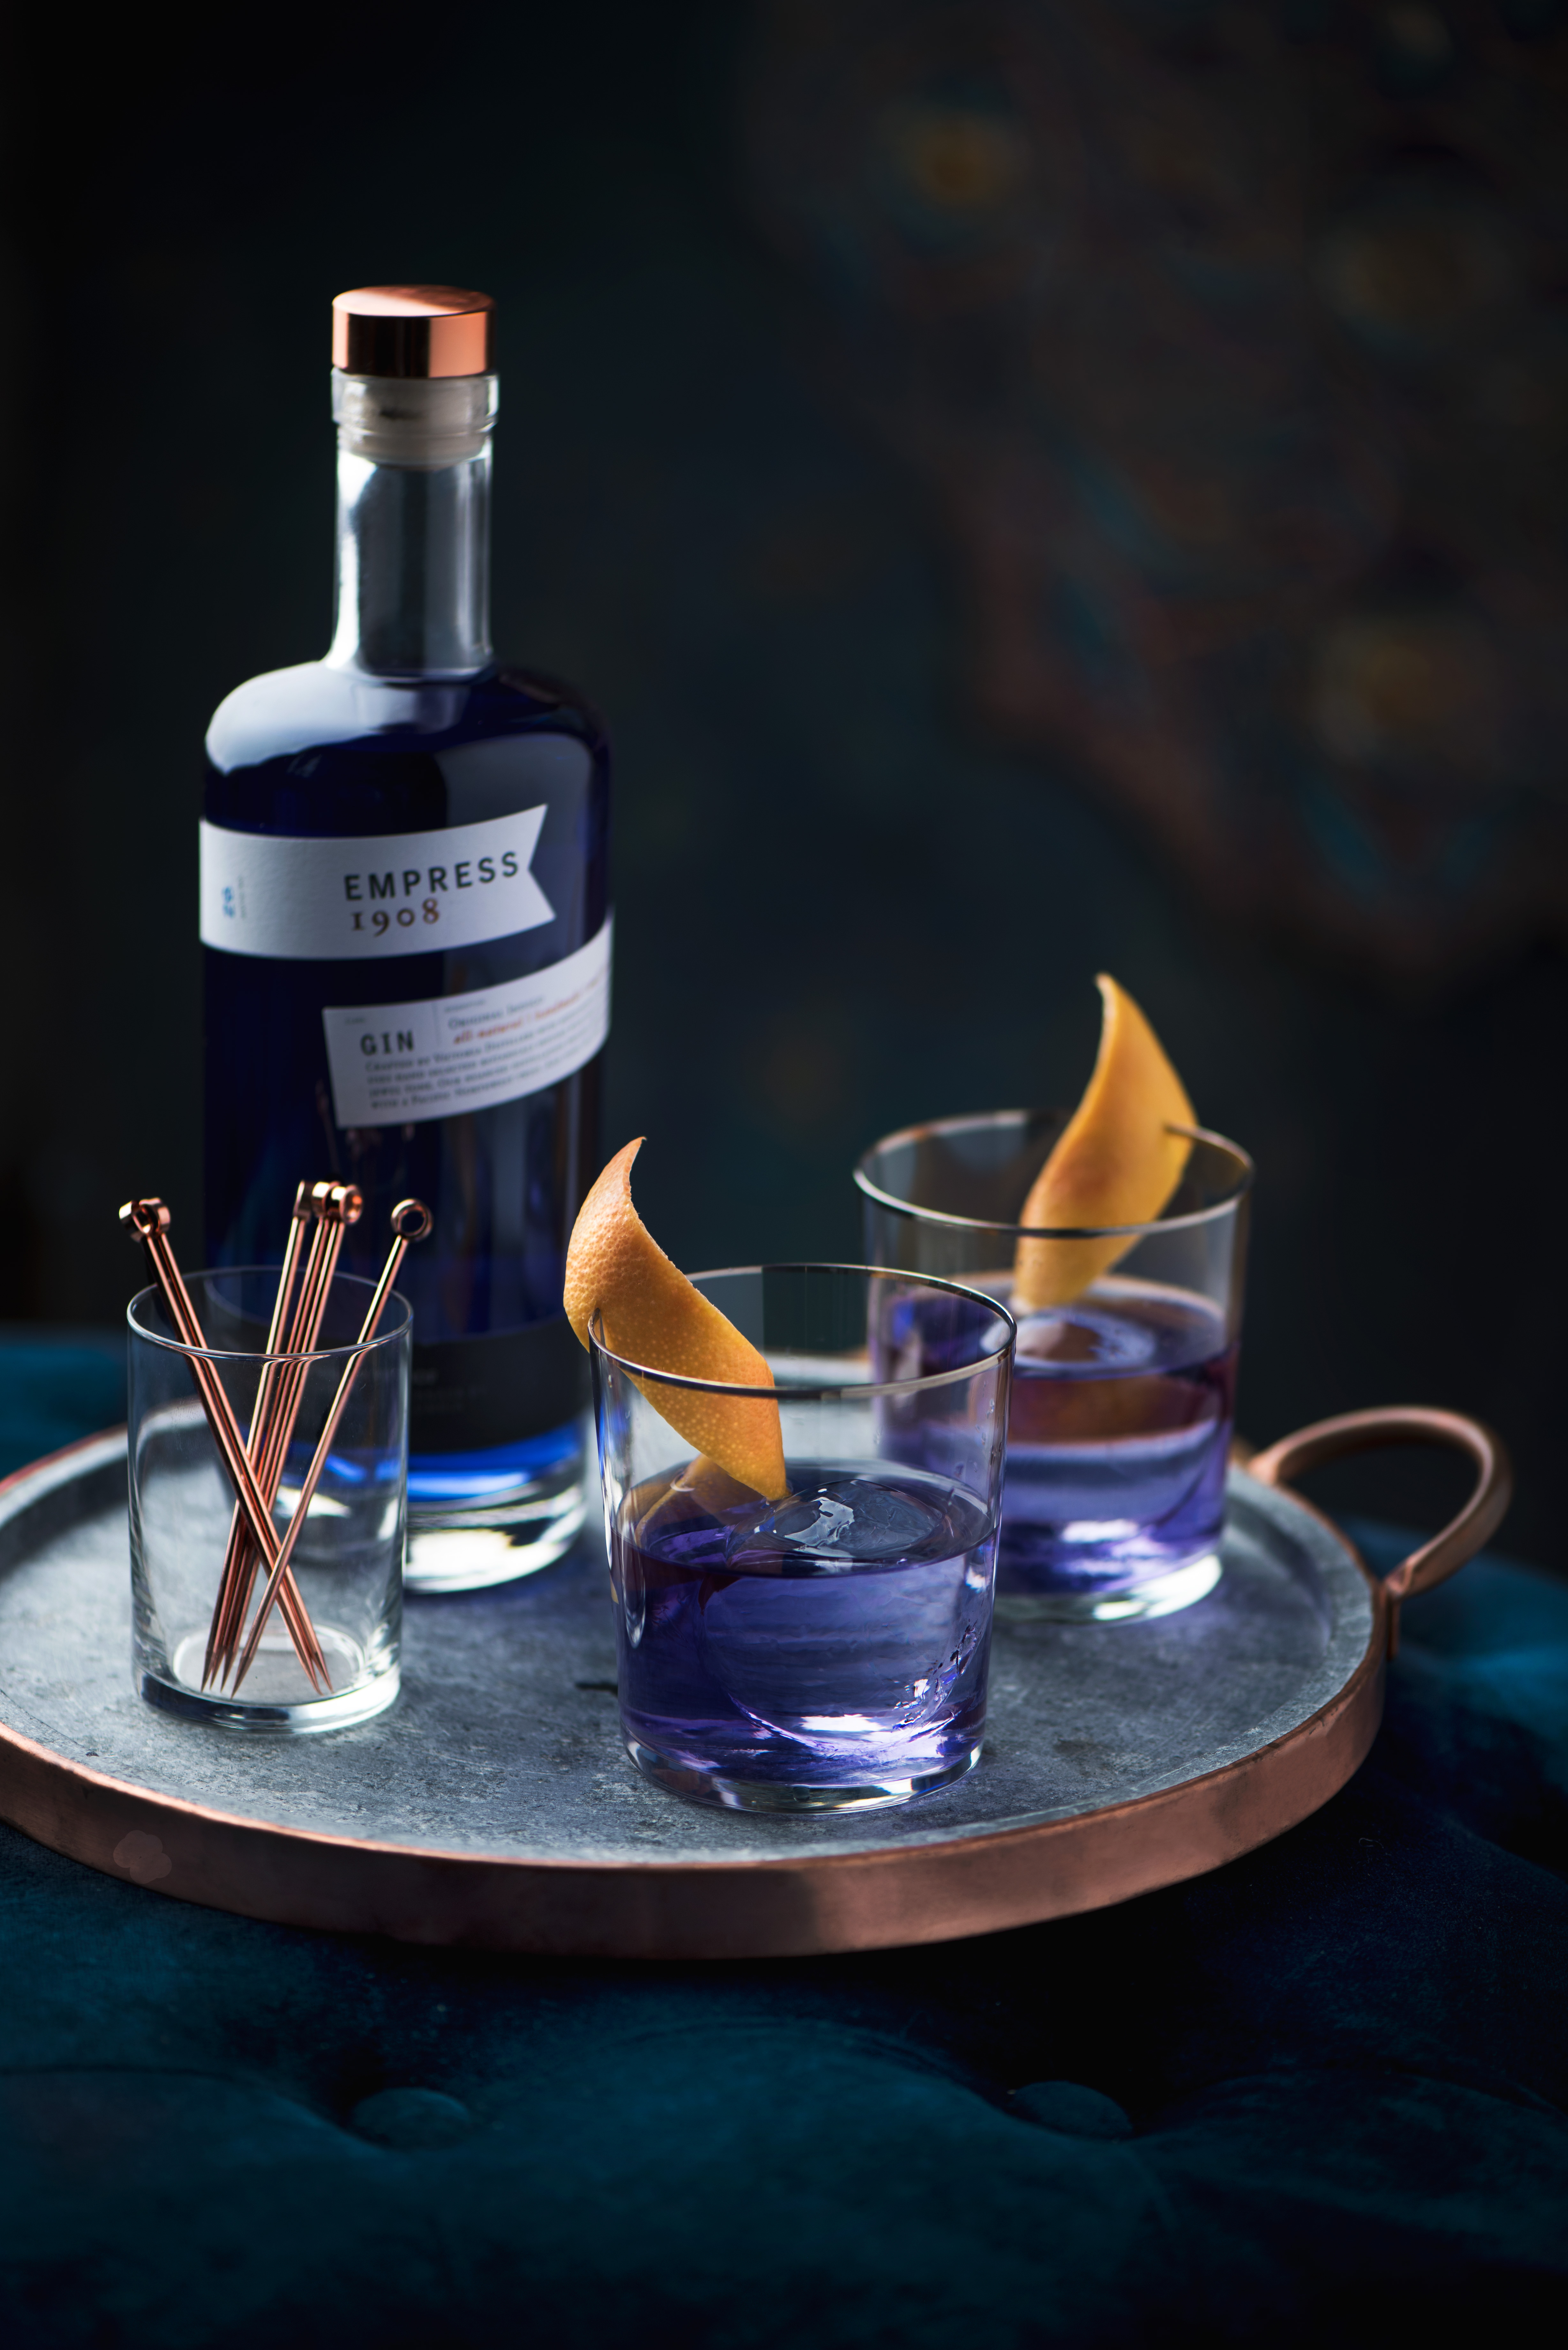 EMPRESS-GIN-STYLED-FINAL-6